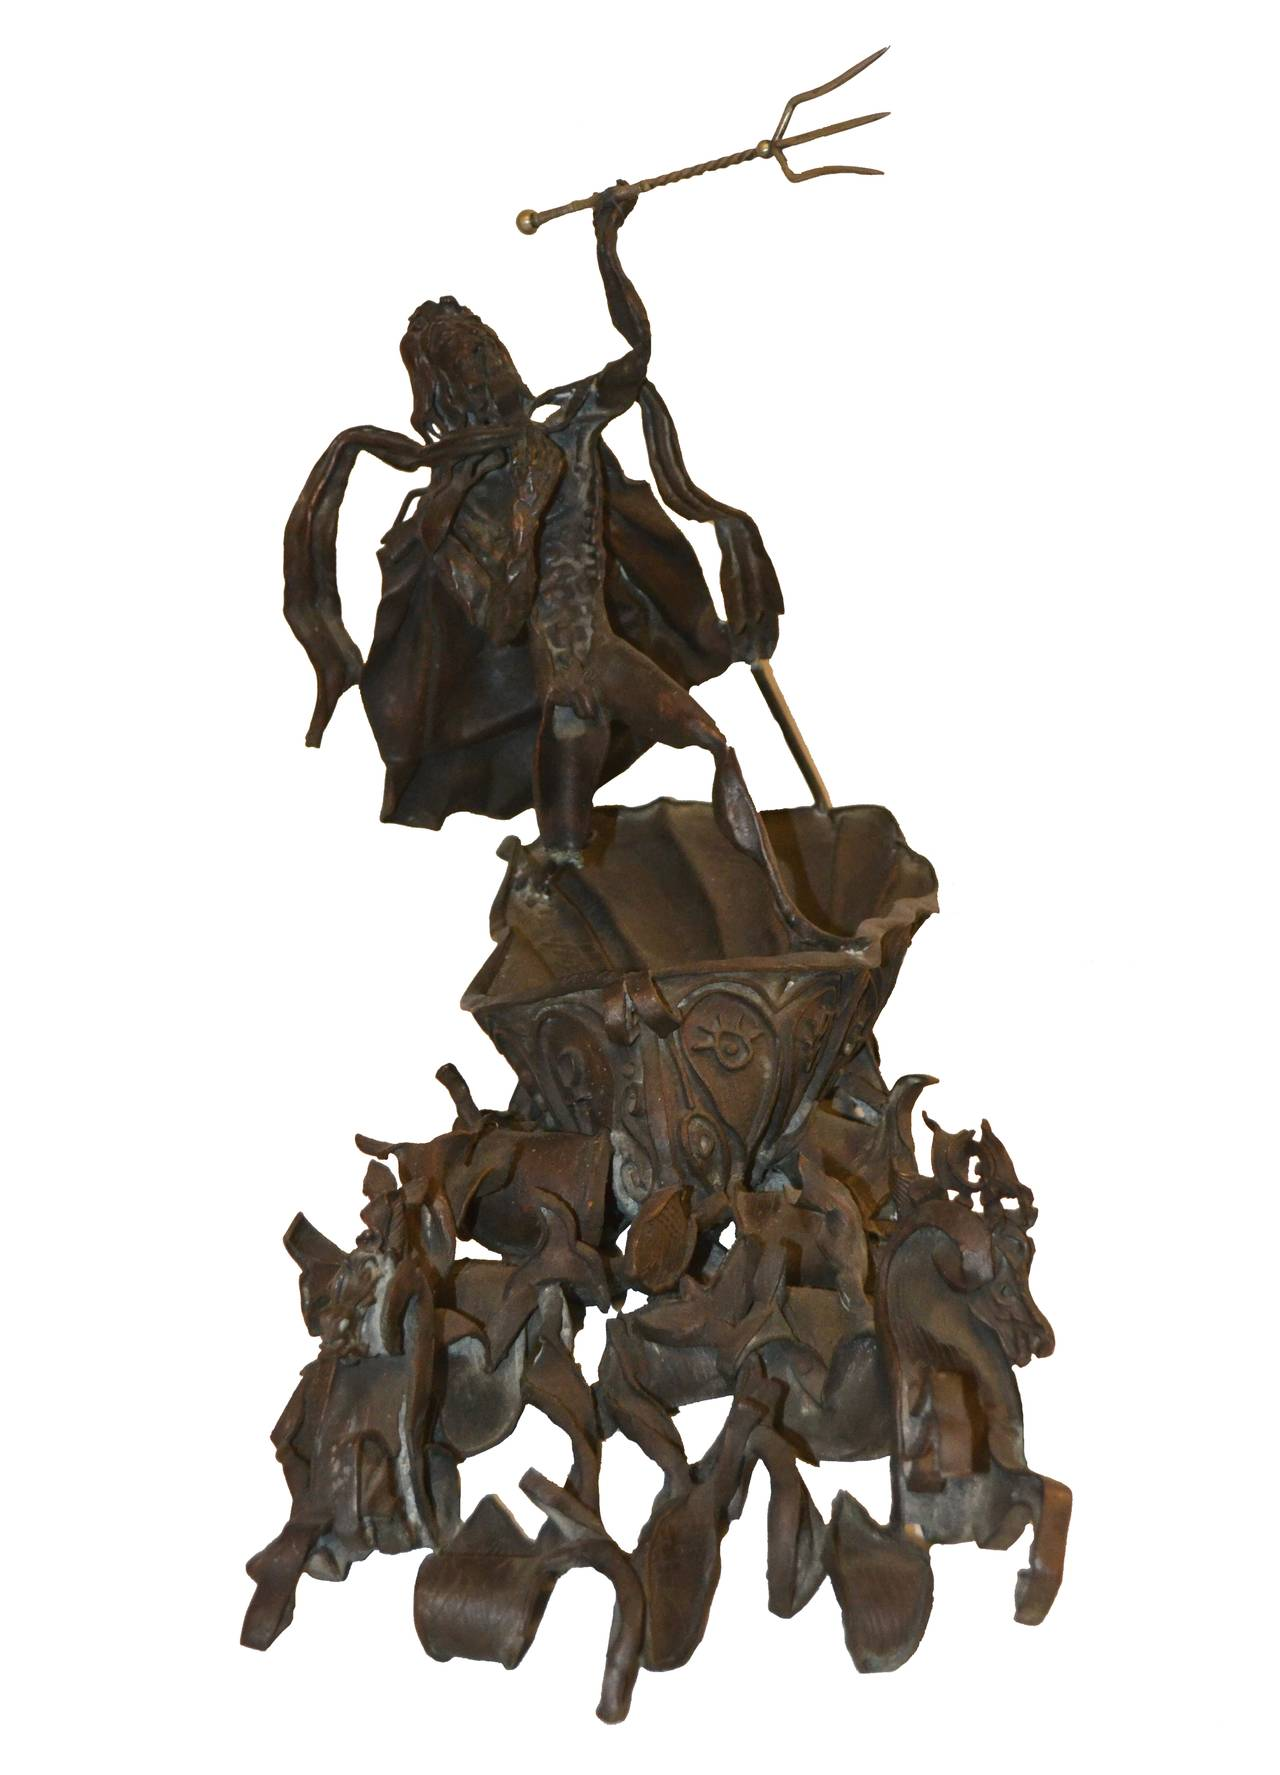 A rare sculpture by Daniel Albert Harris (aka: Zev- the Wolf) (1914-1986) c. 1968 A substantial and stunning bronze sculpture of Poseidon (or Neptune) riding on a shell driven by horses in the wave. This bronze piece has a brutalist Picasso-esque